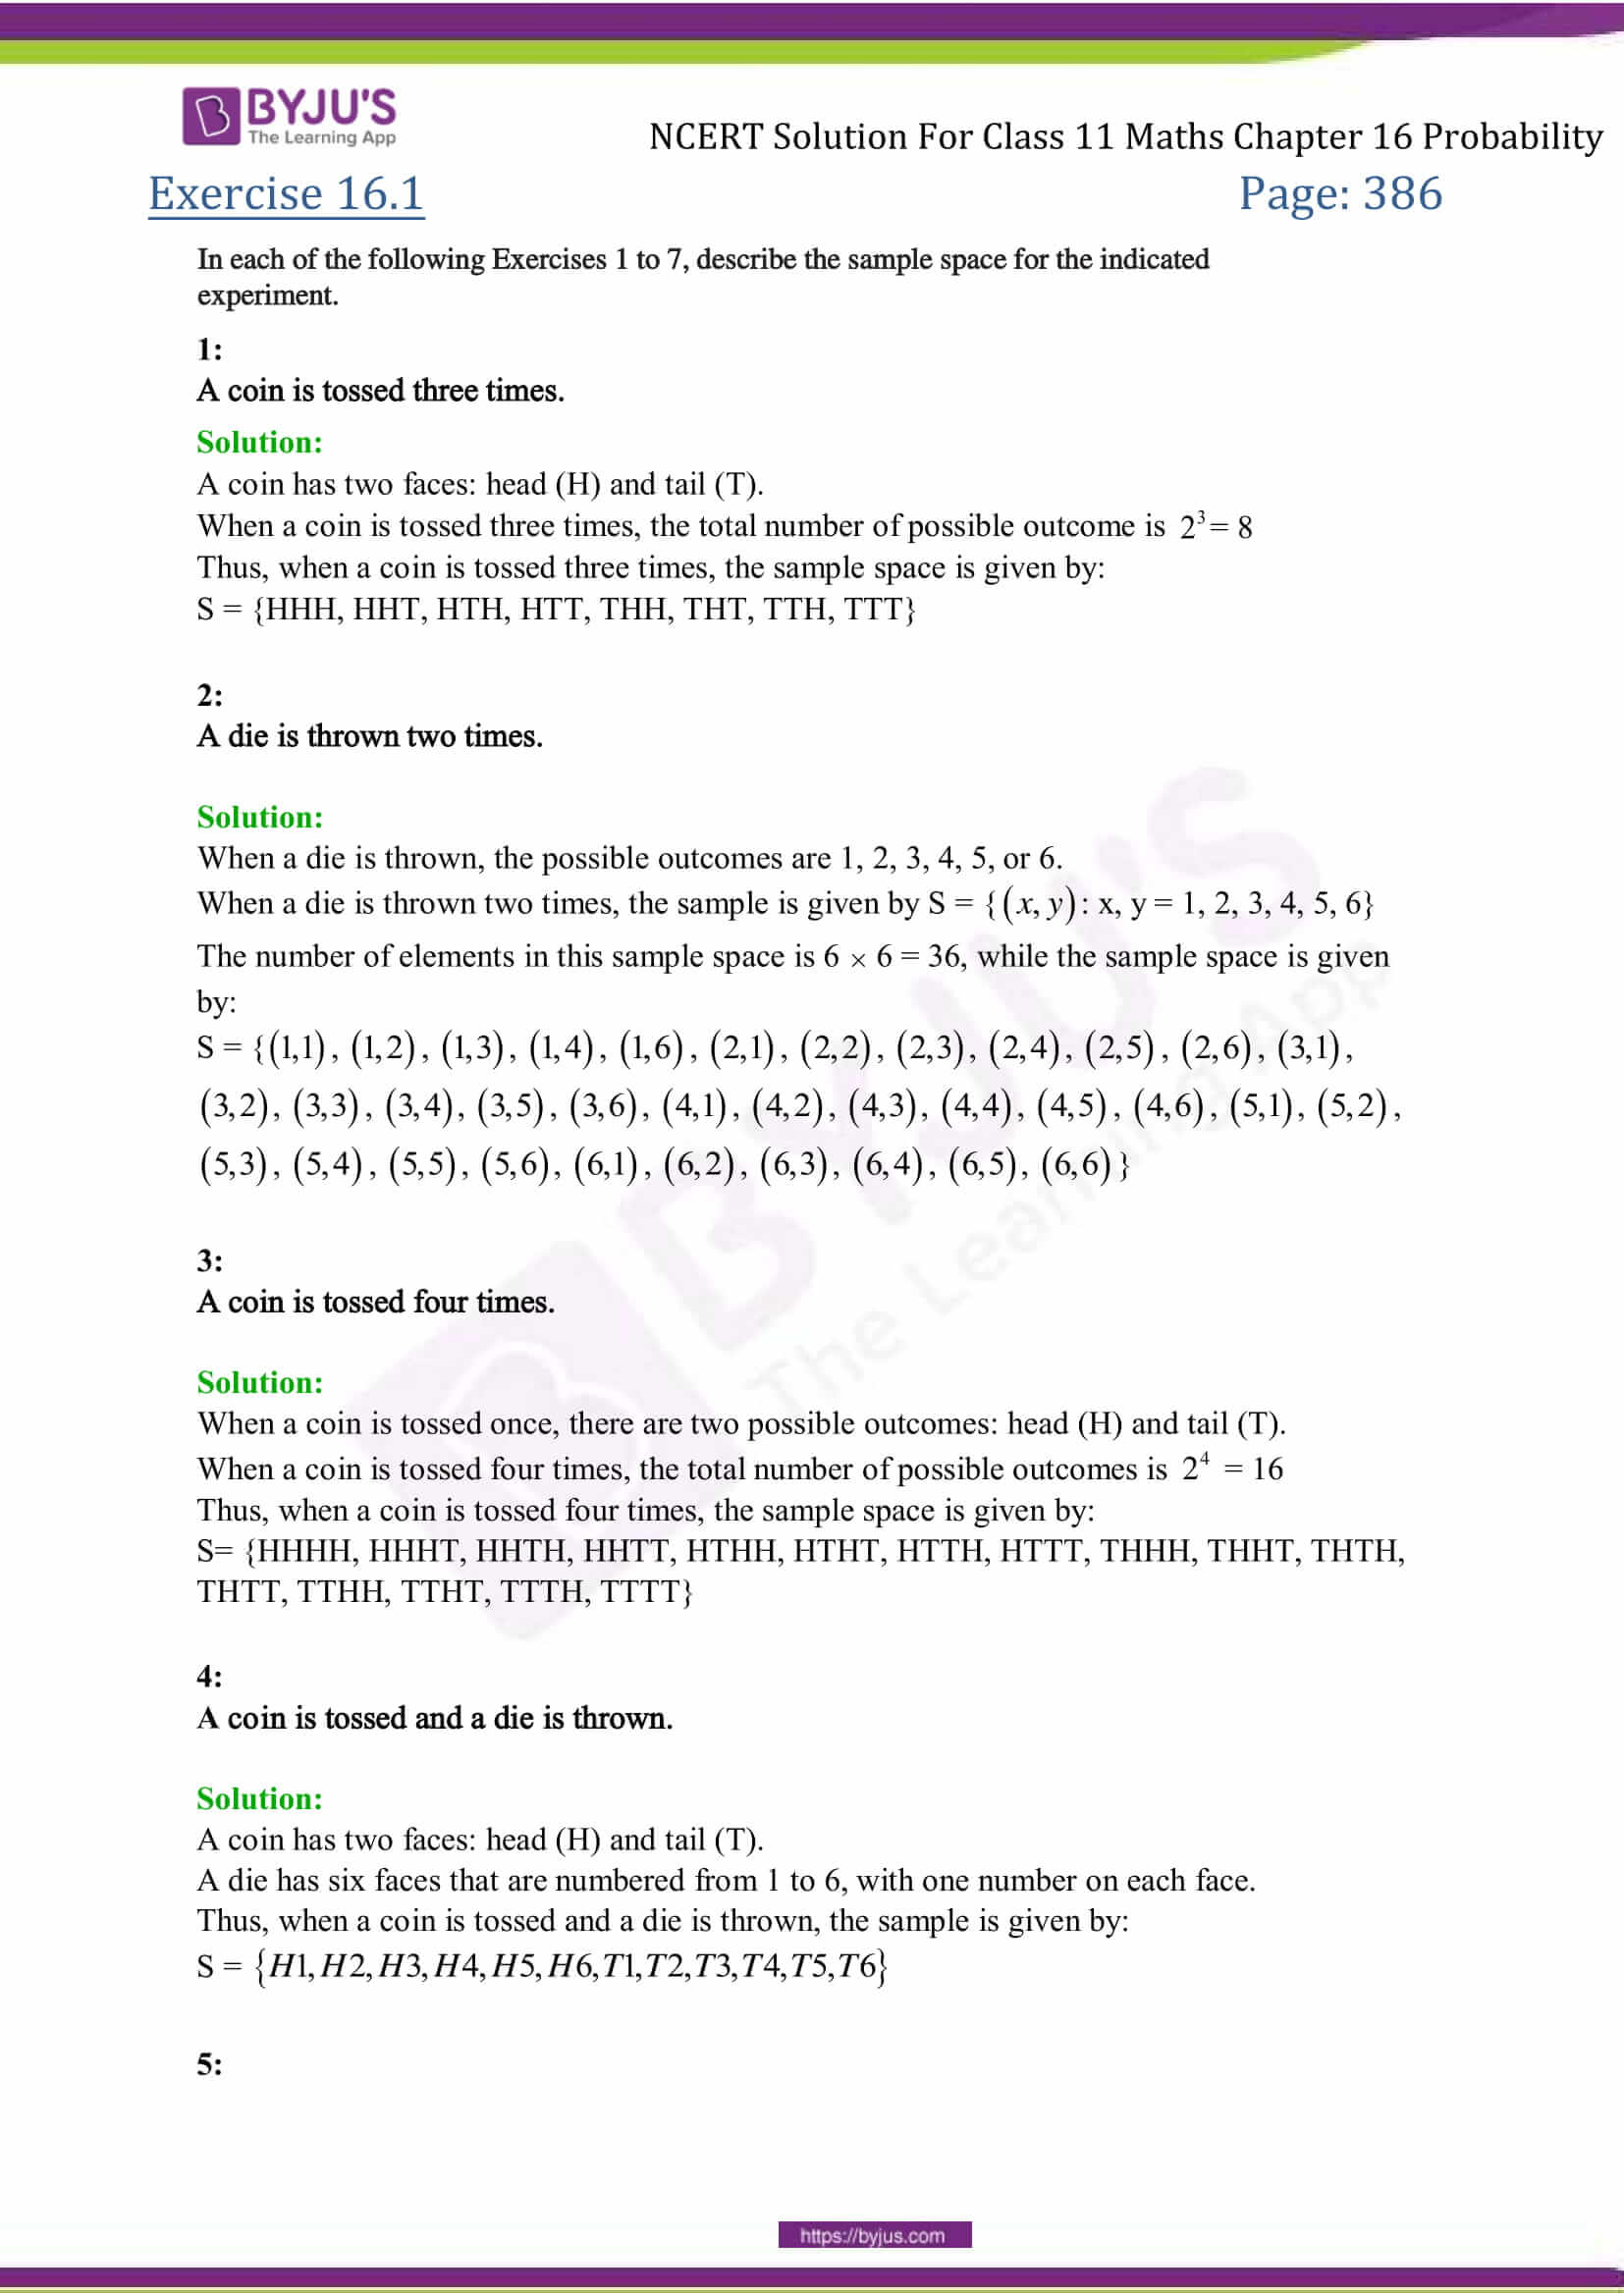 NCERT Solutions Class 11 Maths Chapter 16 Theory of Probability